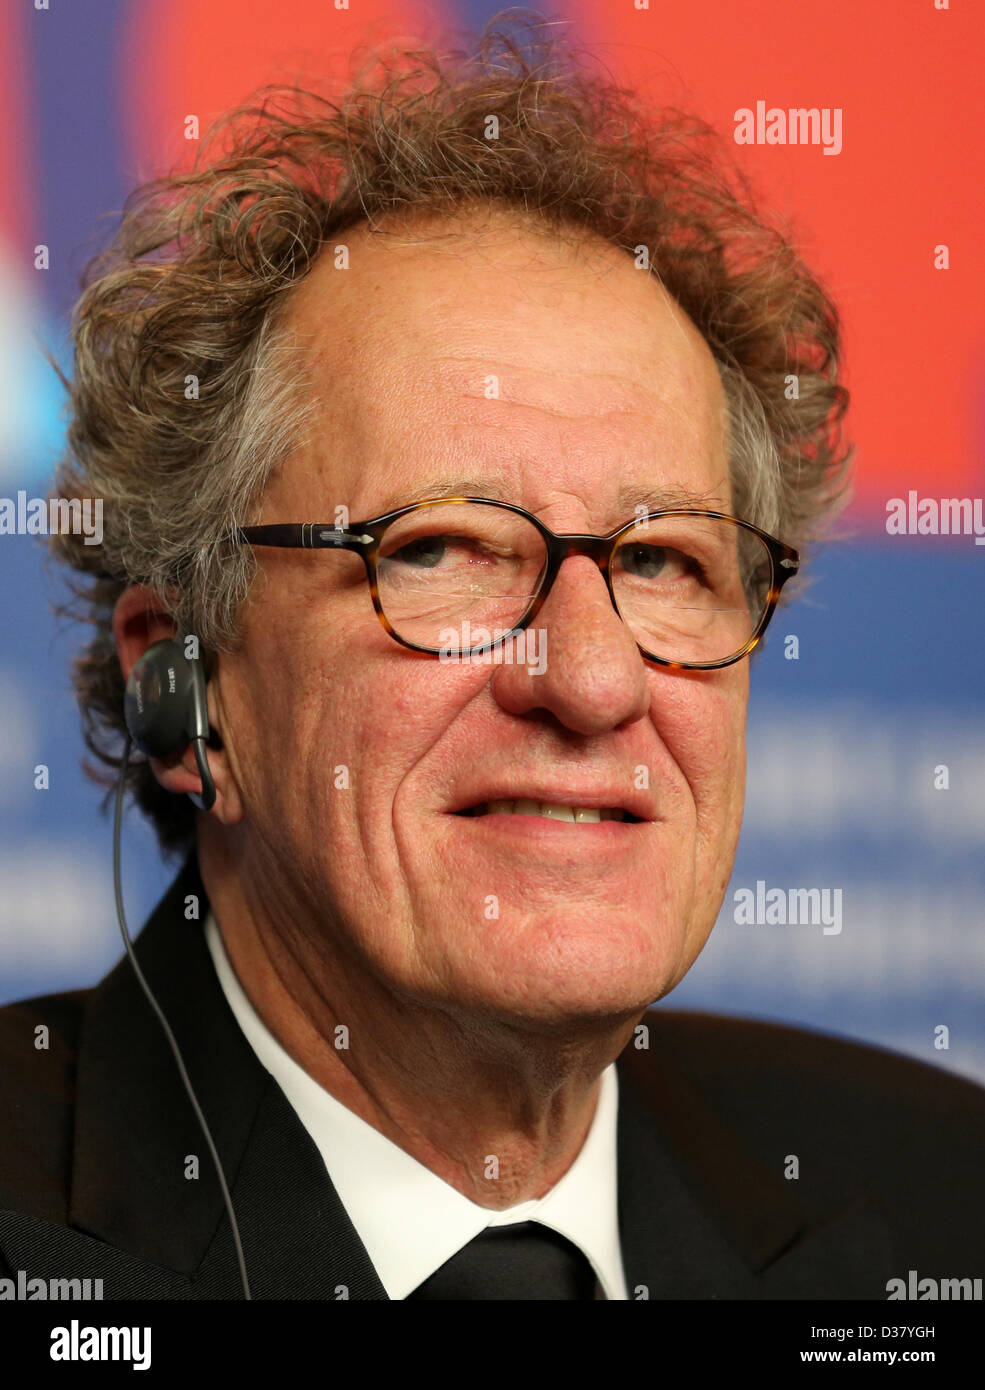 Australian actor and film producer Geoffrey Rush attends the press conference for the movie 'The Best Offer' - Stock Image